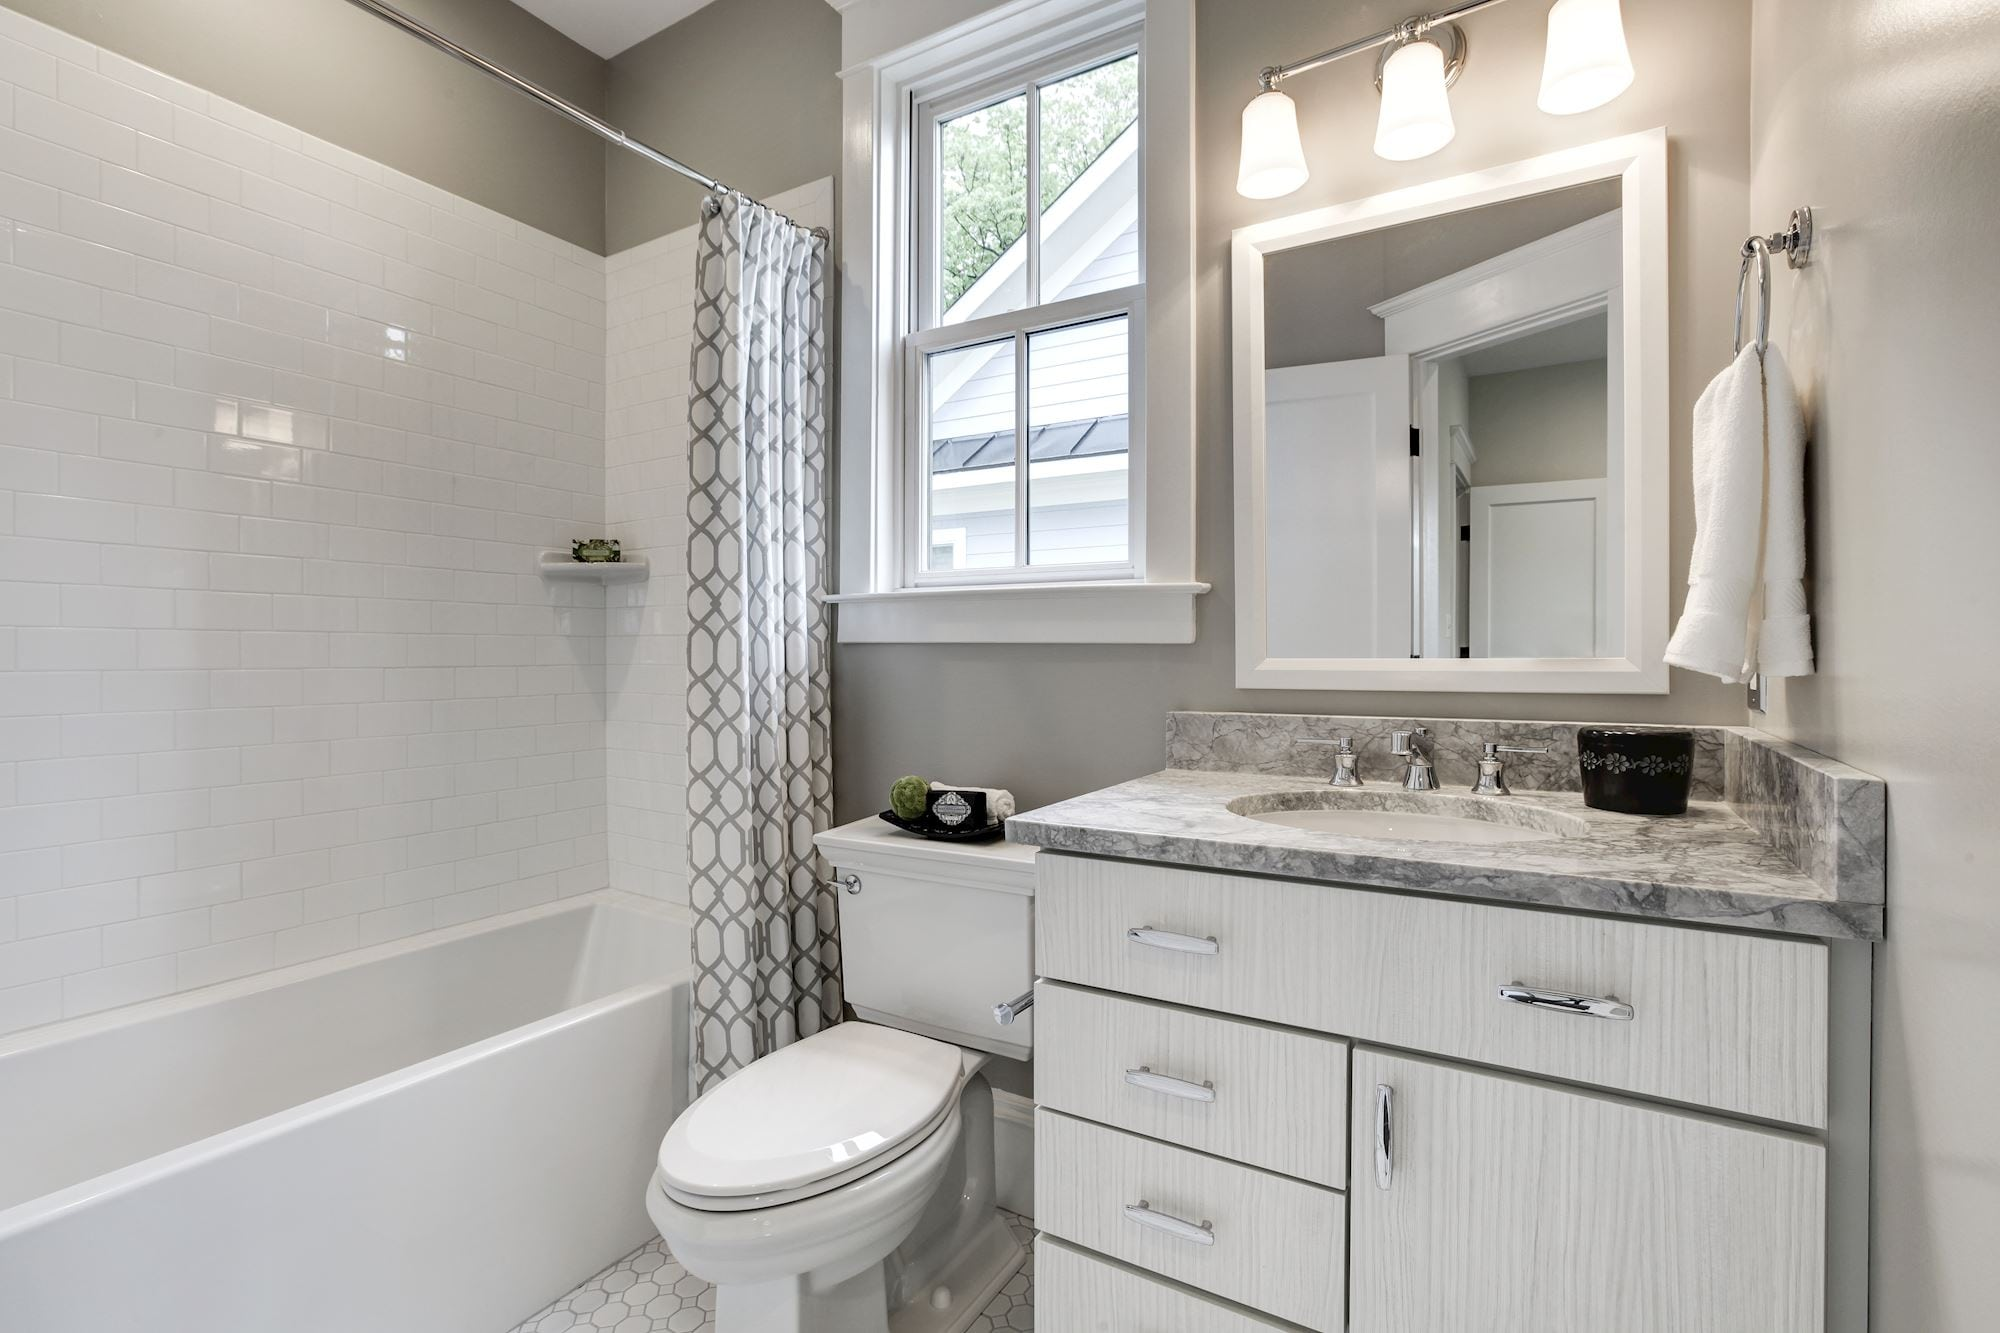 En suite bath. Custom Home by Custom Builder, North Arlington, VA 22207